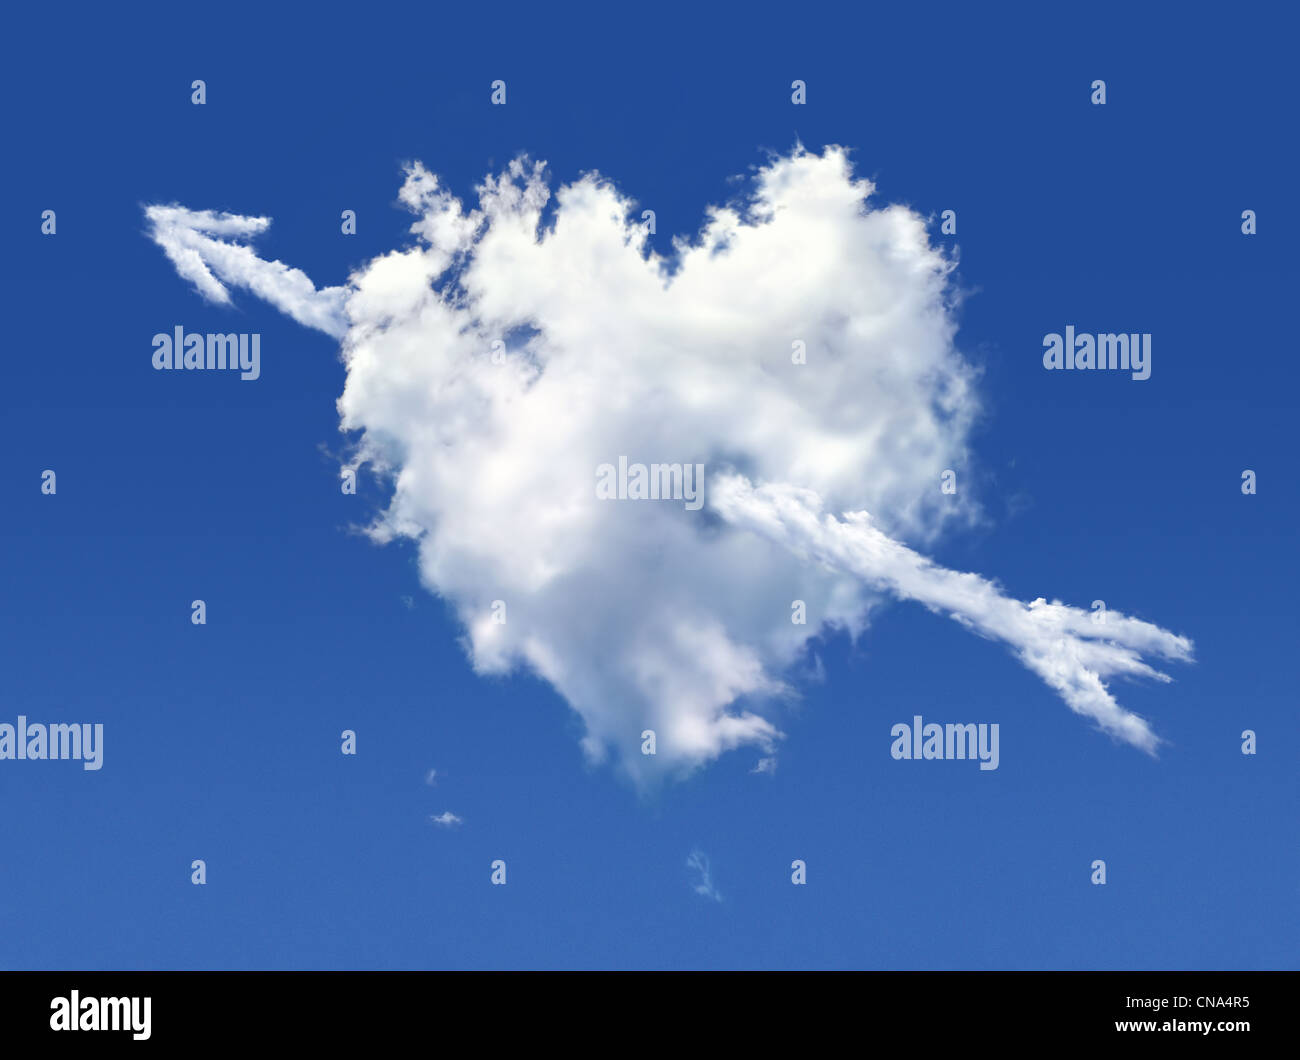 Fluffy cloud of the shape of heart, on a deep blue sky. - Stock Image